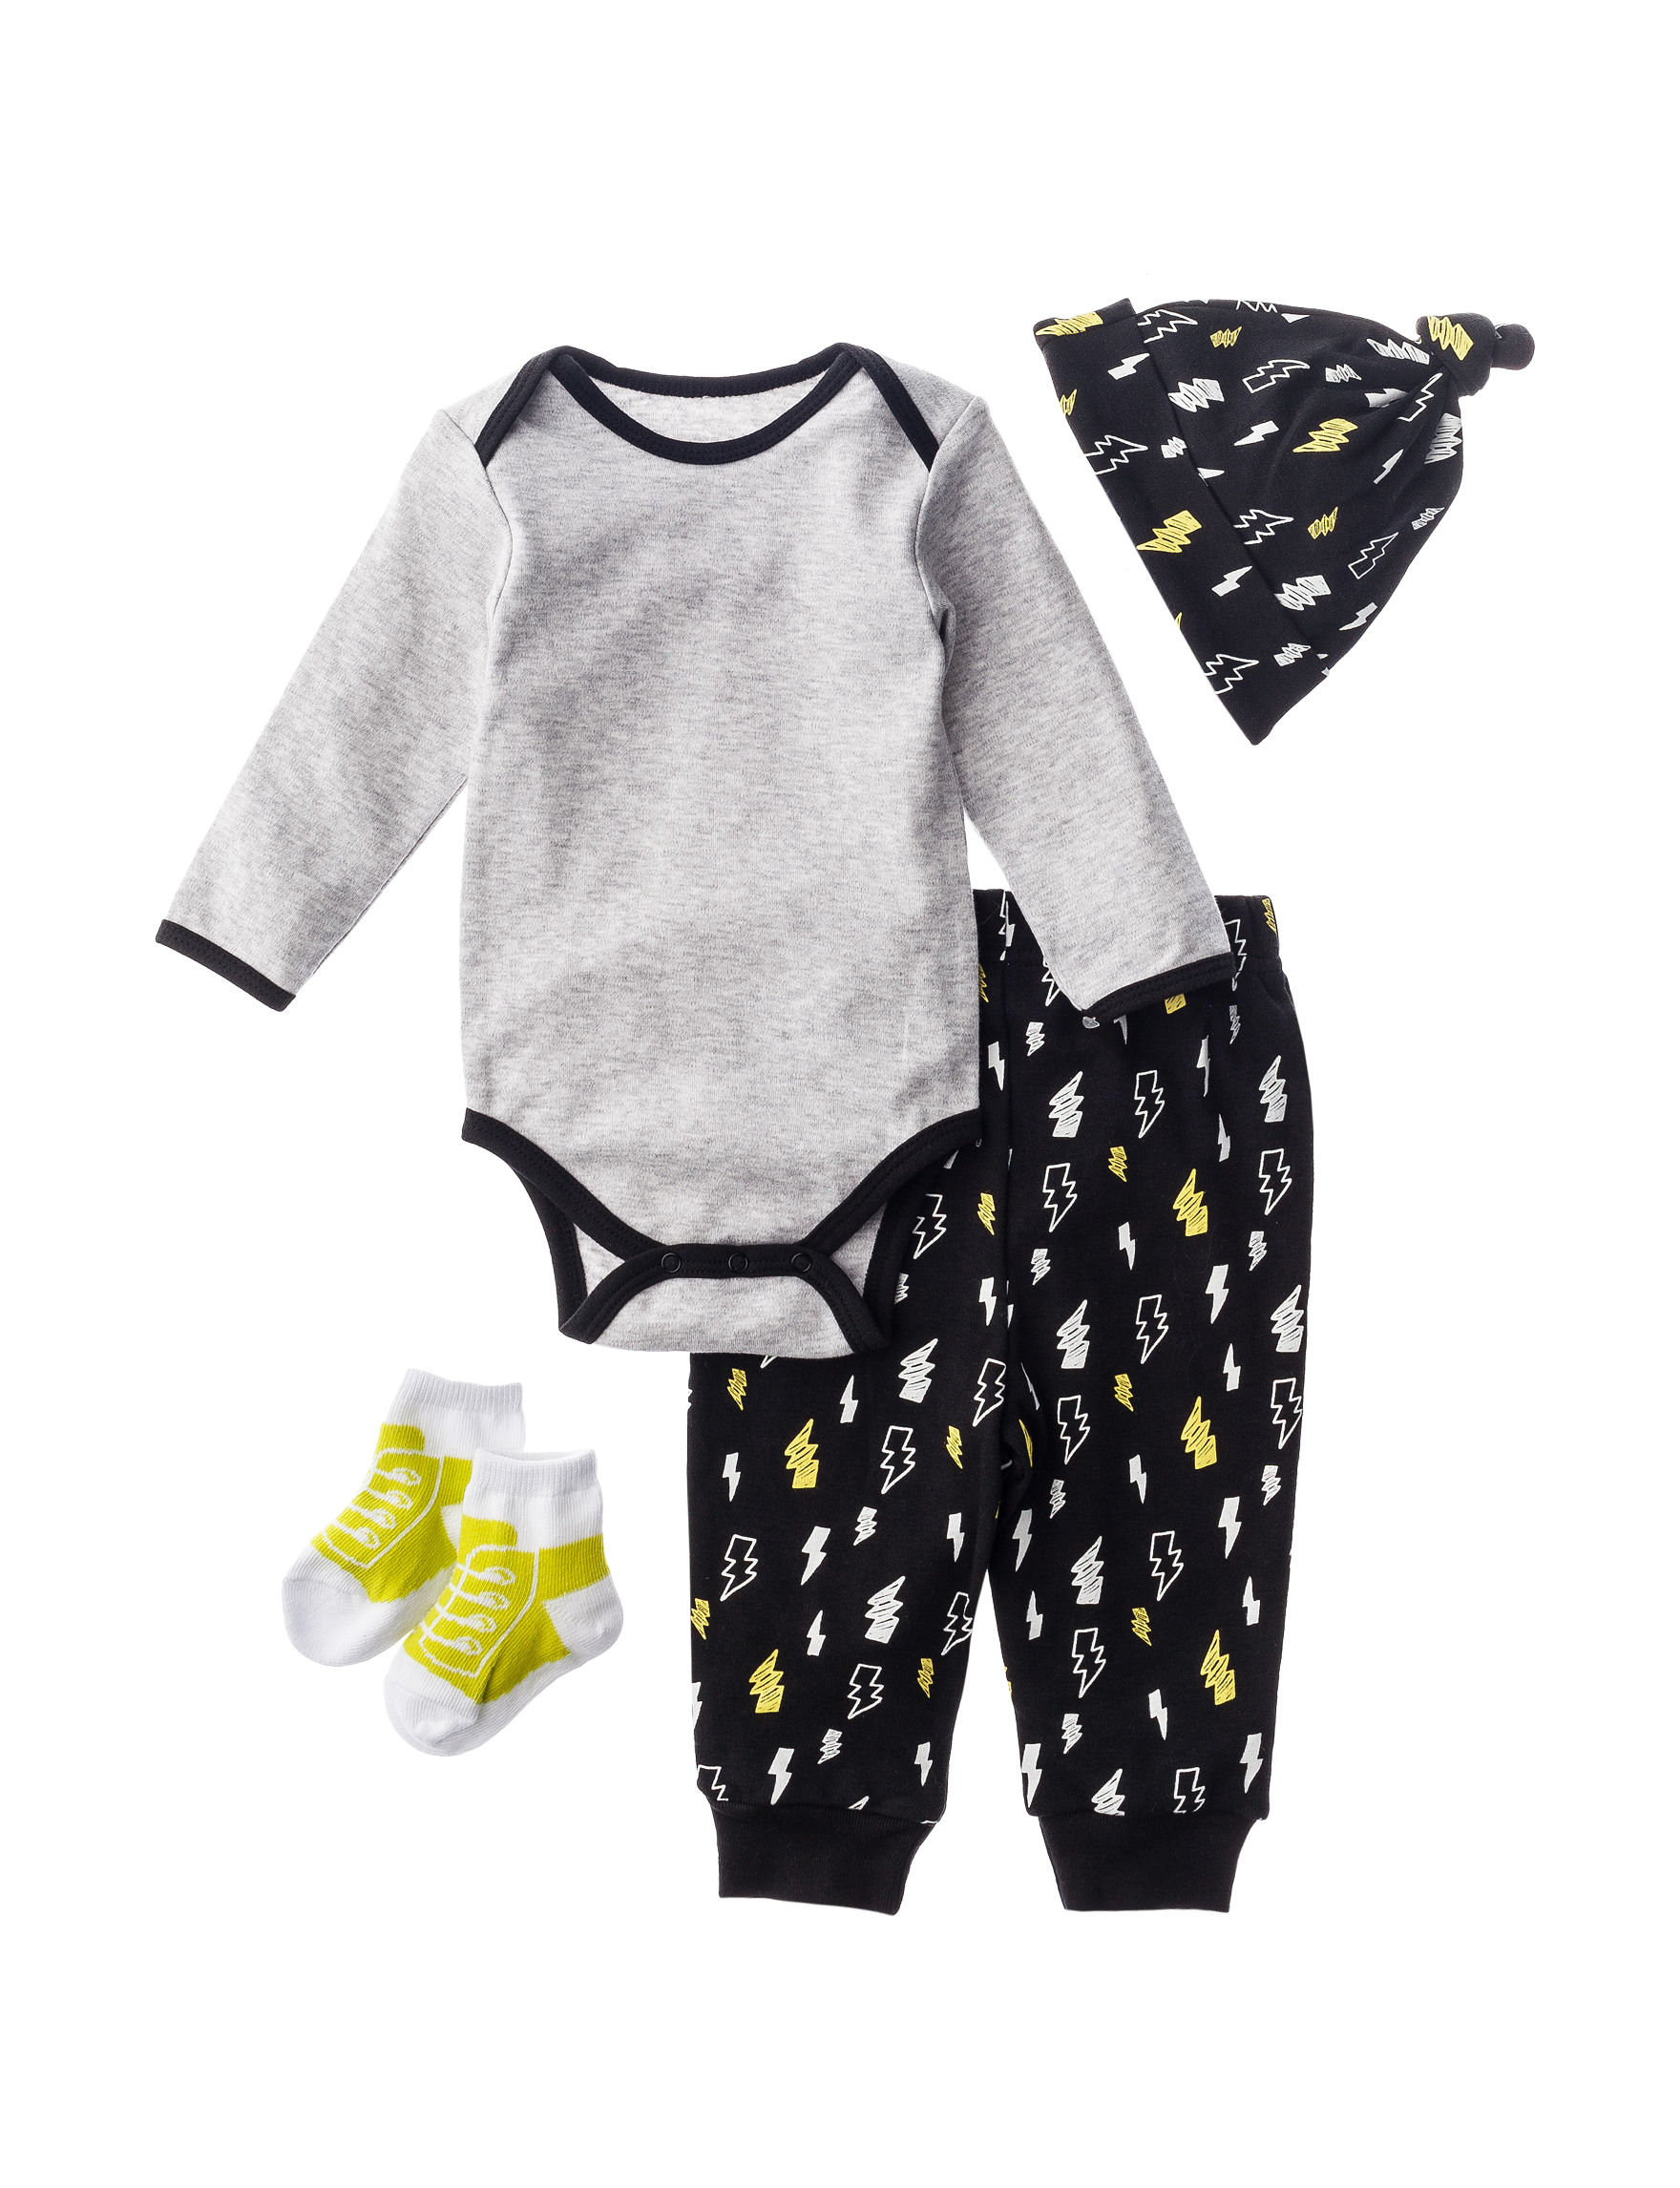 Baby Gear Charcoal